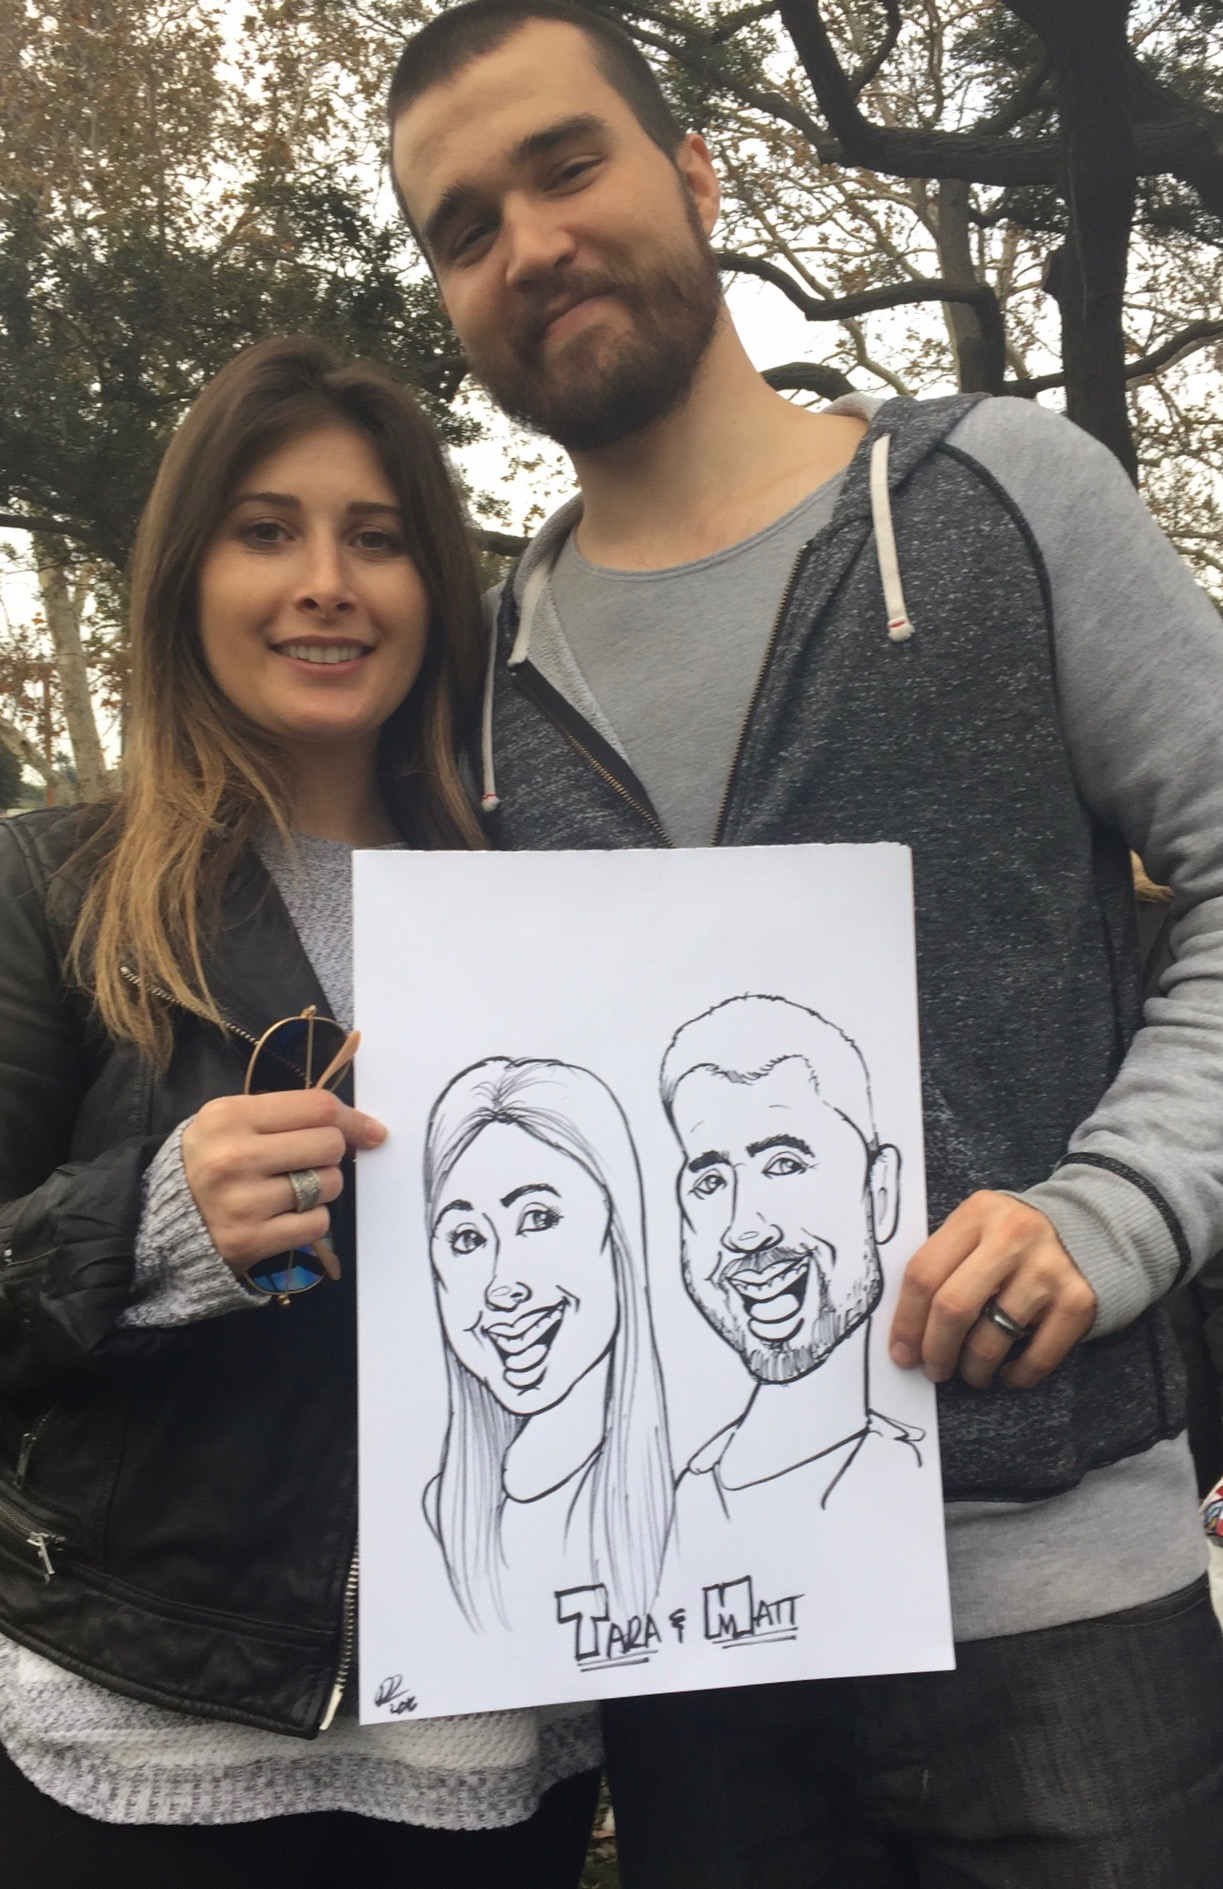 Caricature - Tara & Matt